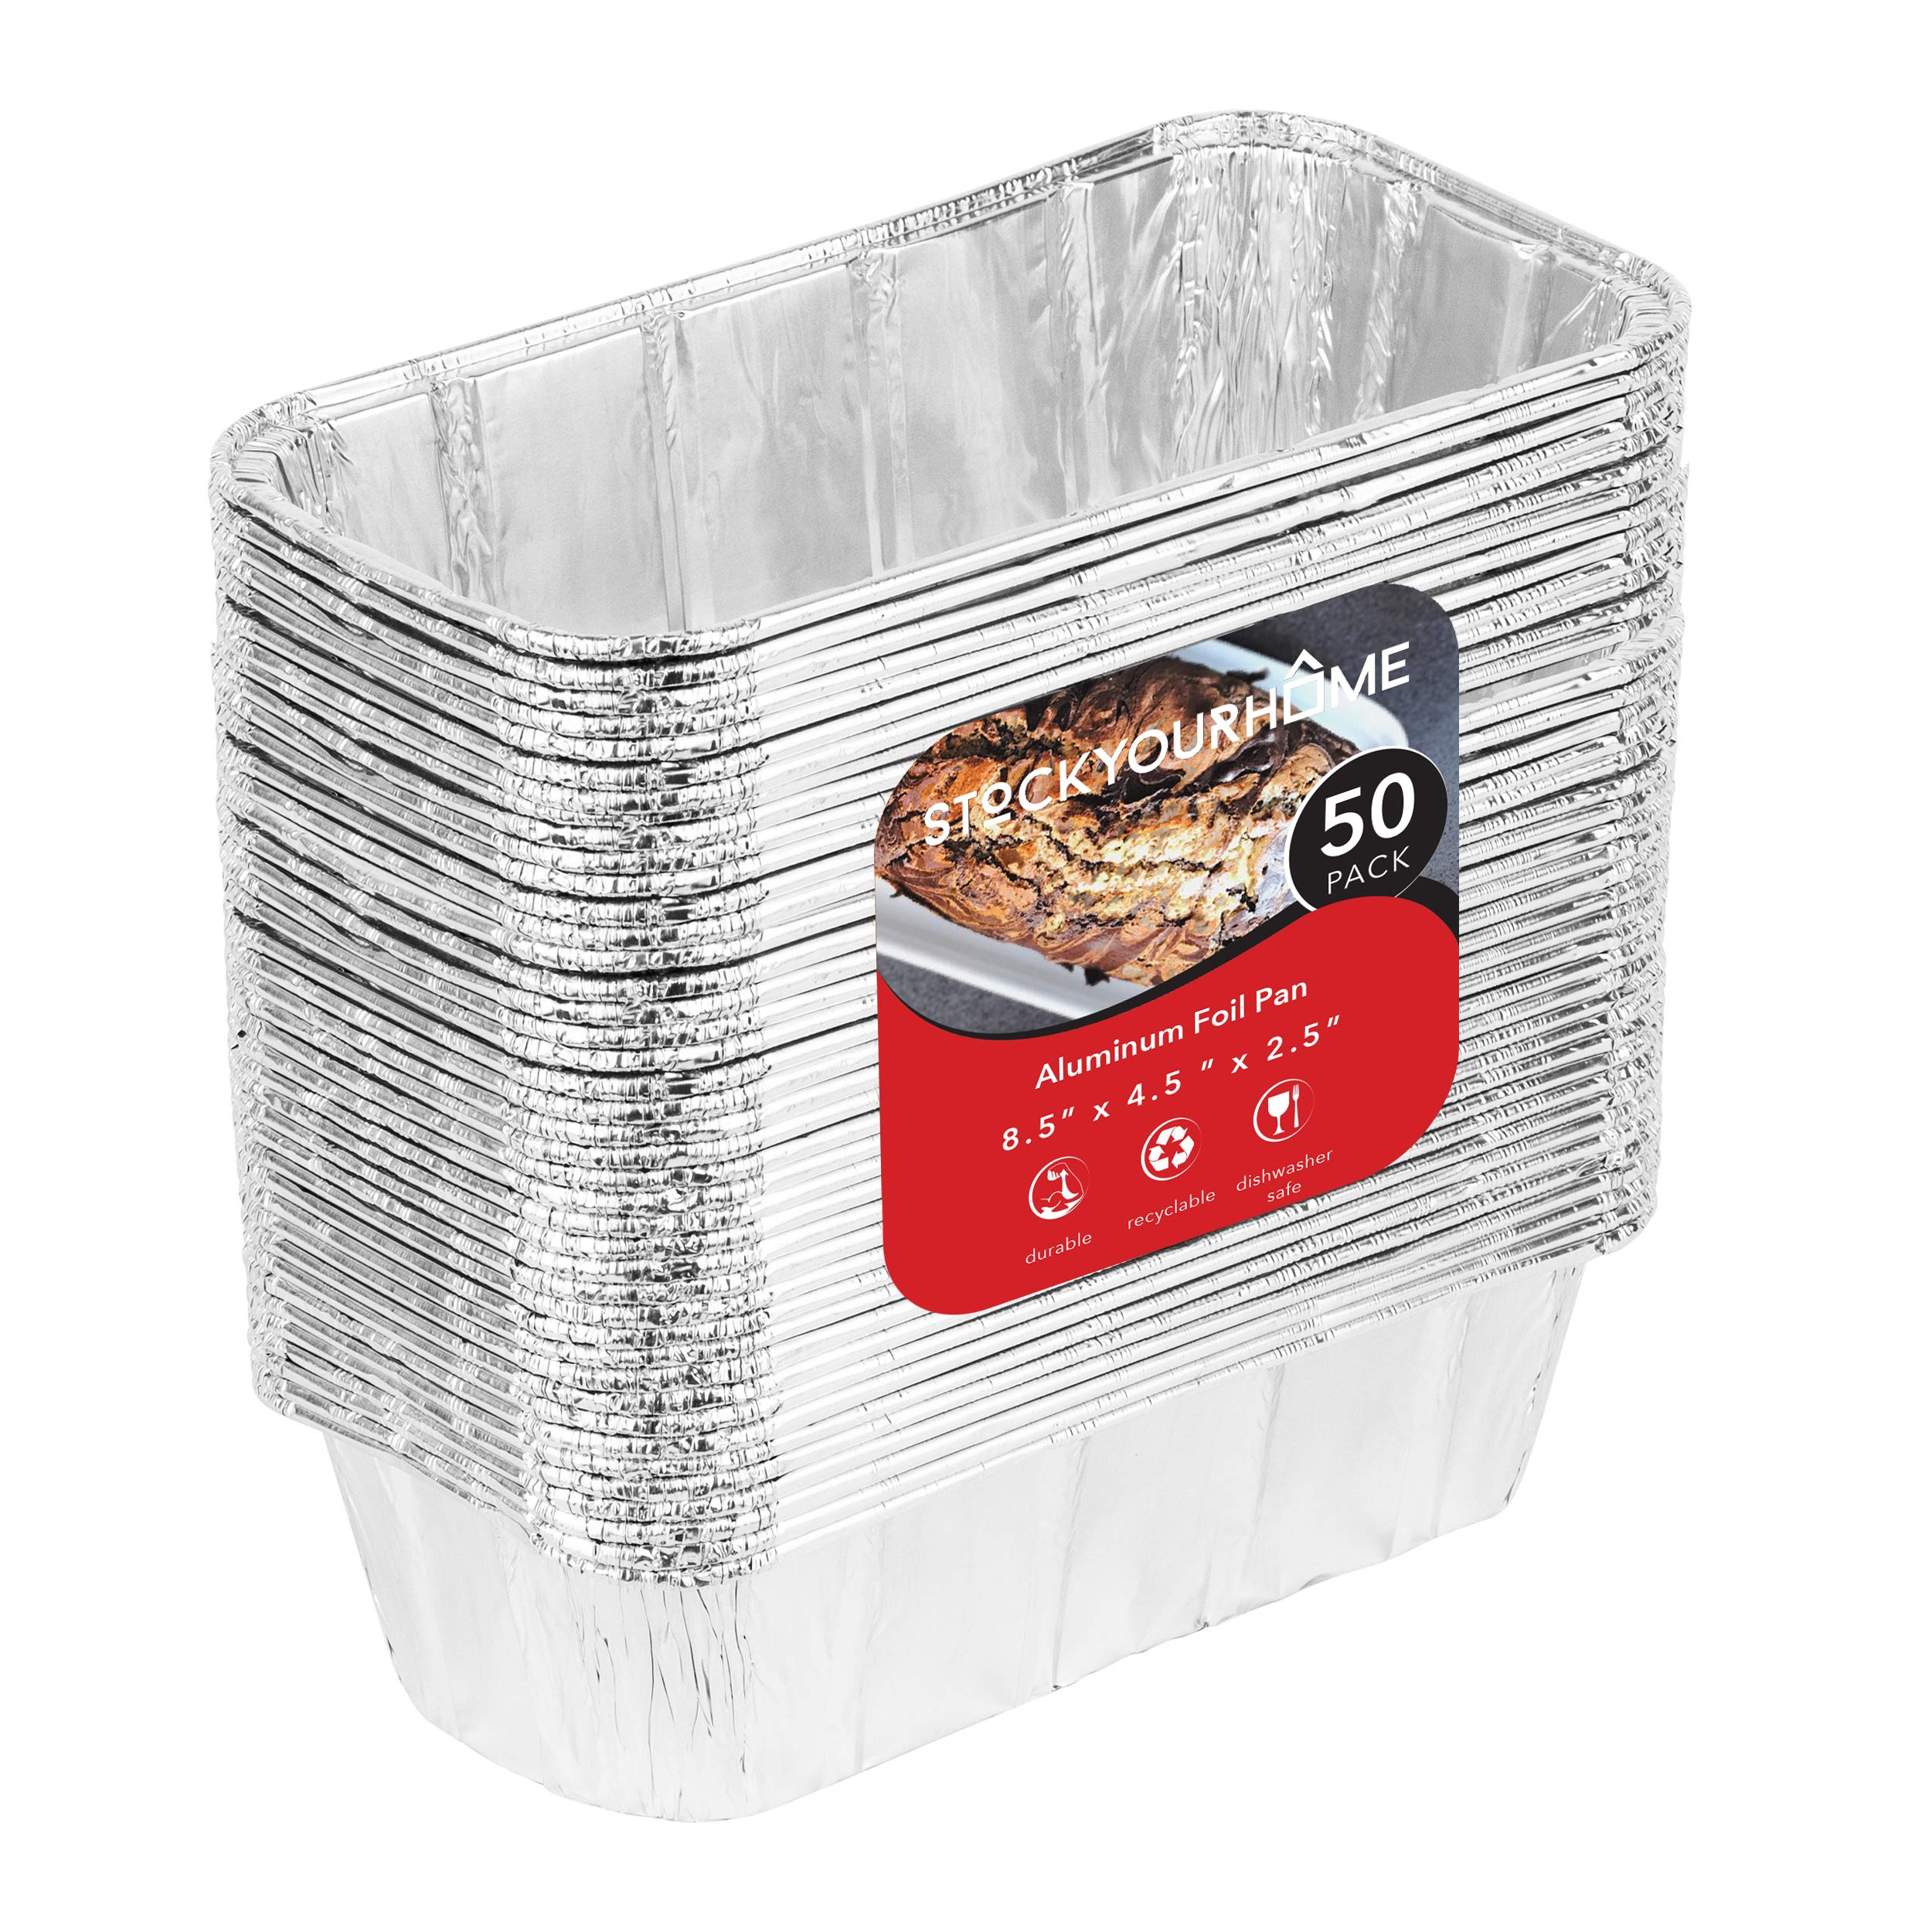 Aluminum Loaf Pans (50 Pack) 8x4 Loaf Pan - 2Lb Bread Tins, Standard Size, Compatible with Roadpro 12 Volt Portable Stove - Perfect for Baking Cakes, Bread, Meatloaf, Lasagna